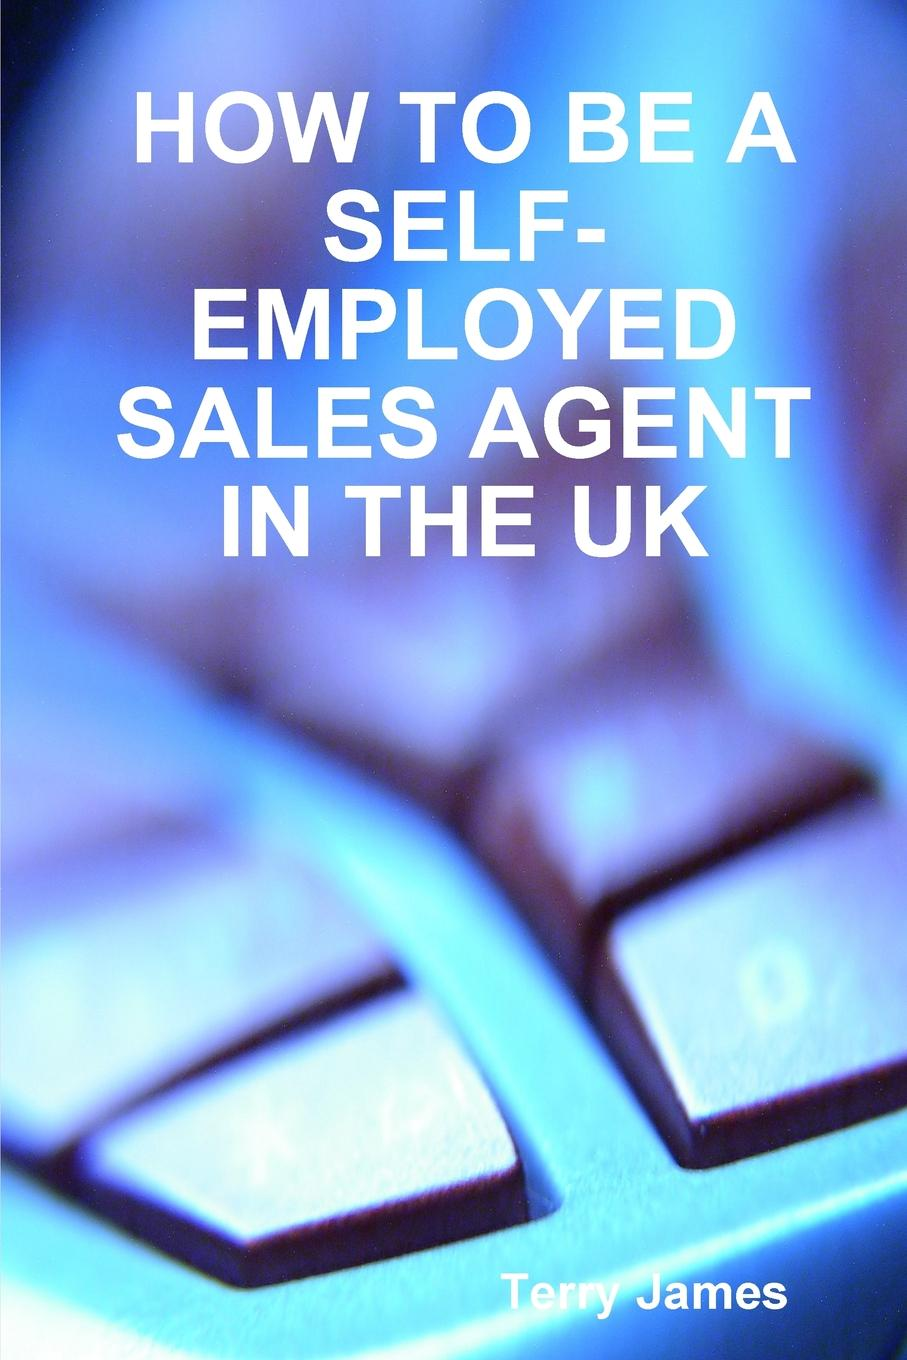 HOW TO BE A SELF-EMPLOYED SALES AGENT IN THE UK A book seeking to help people seeking self-employment as a sales...